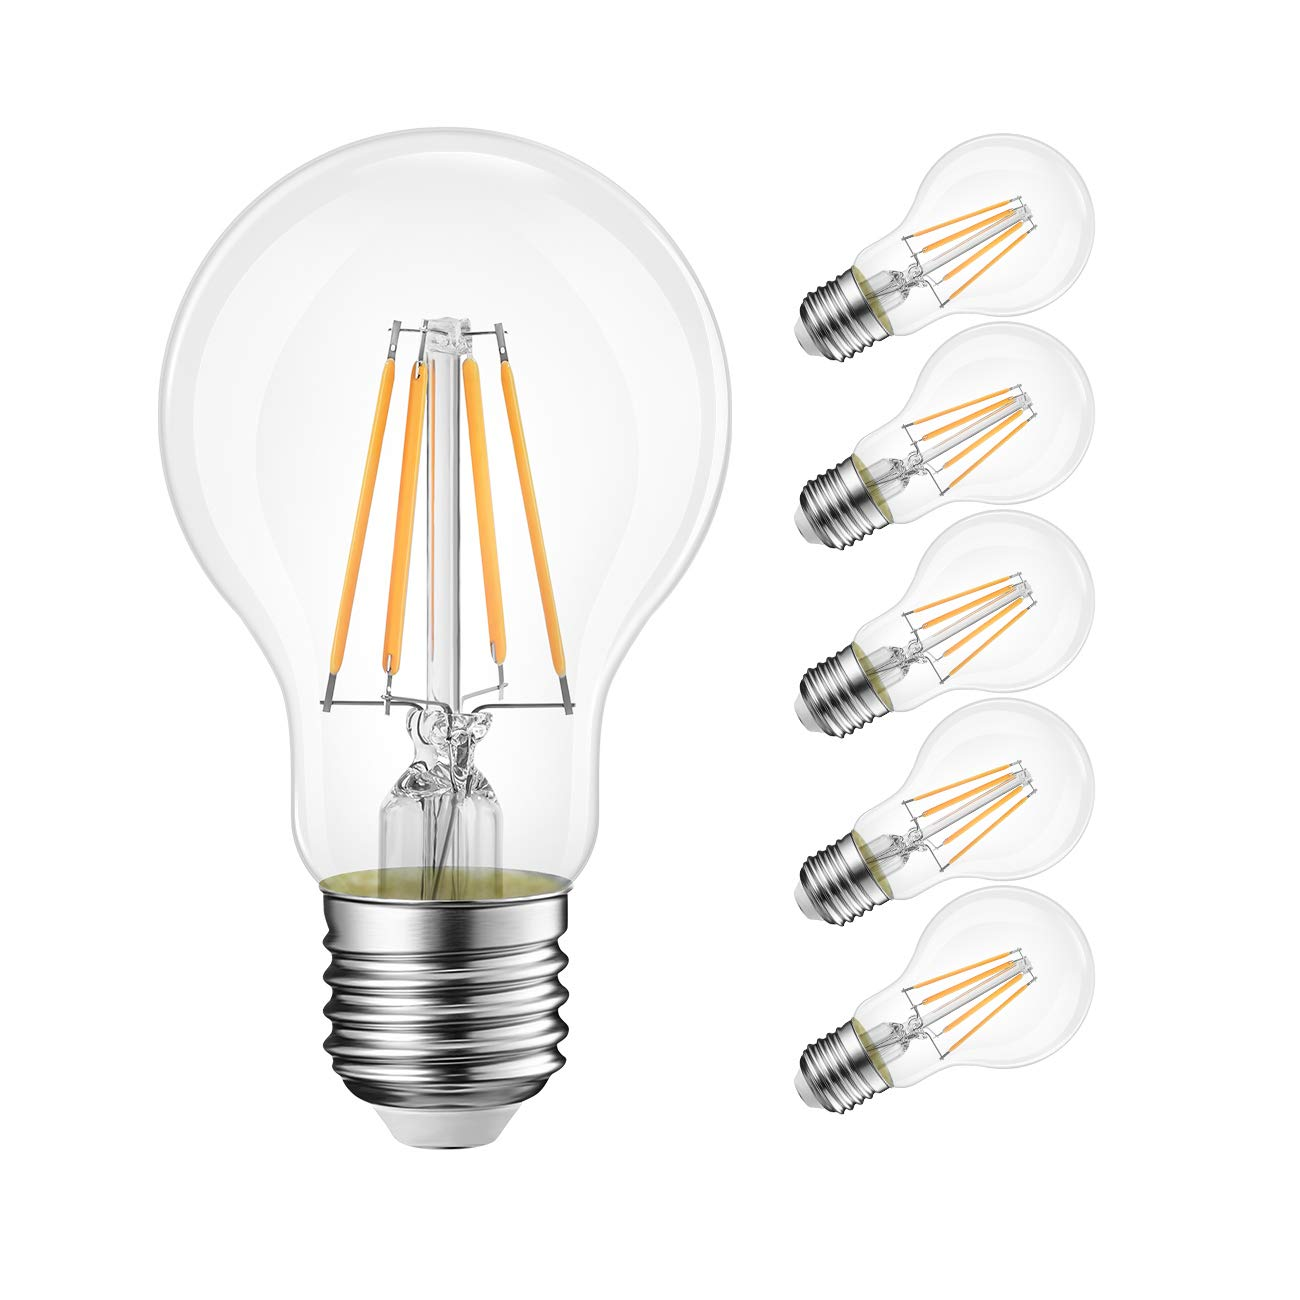 LVWIT A19 LED Filament Bulb 4W, 40W Equivalent 470 Lumens Non-Dimmable Vintage Bulb, Warm White 2700K, E26 Medium Screw Base, UL-Listed, Pack of 6